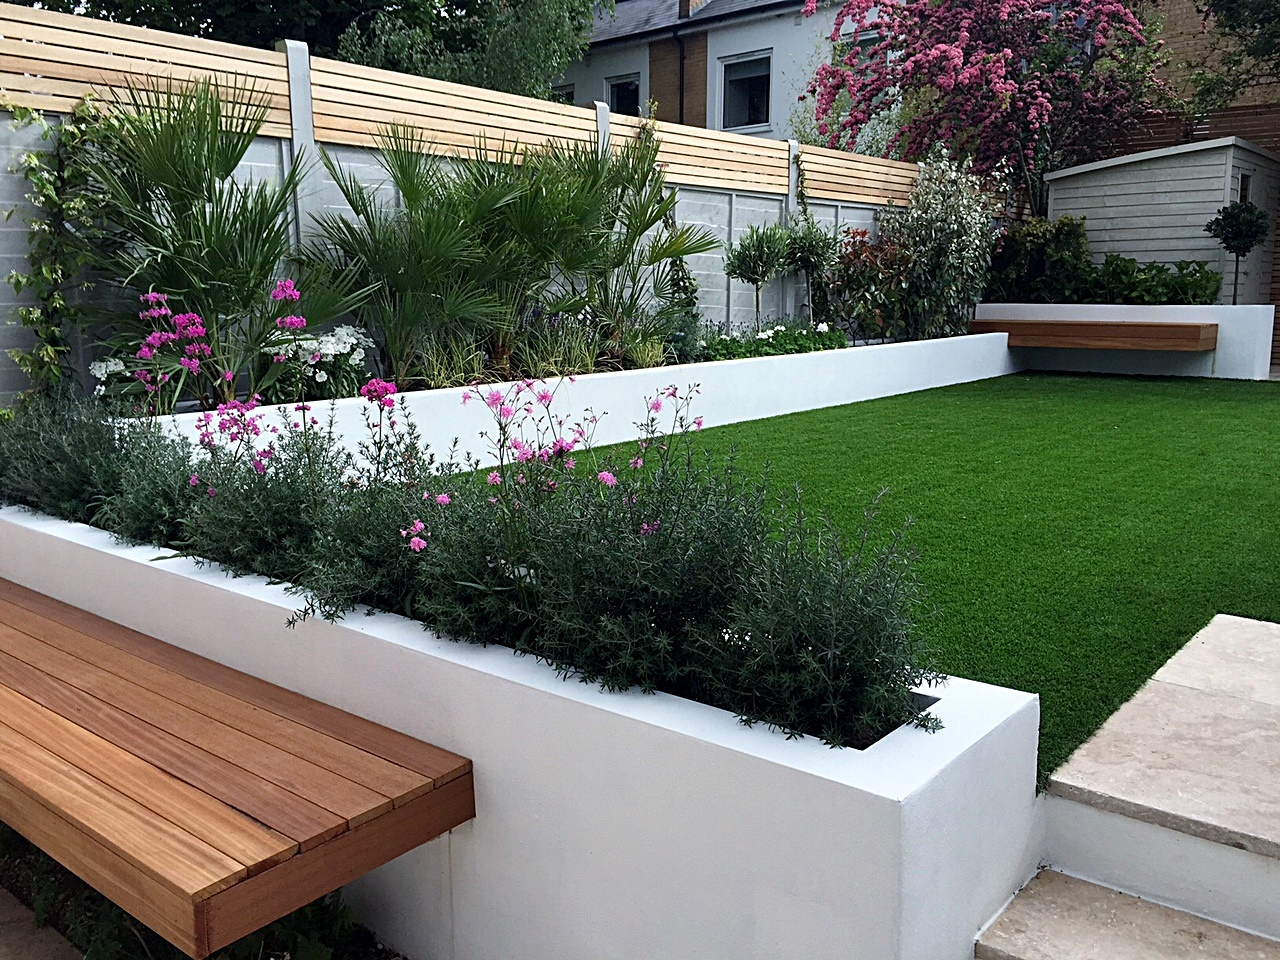 Modern garden design fulham chelsea clapham grass for Garden designs ideas pictures